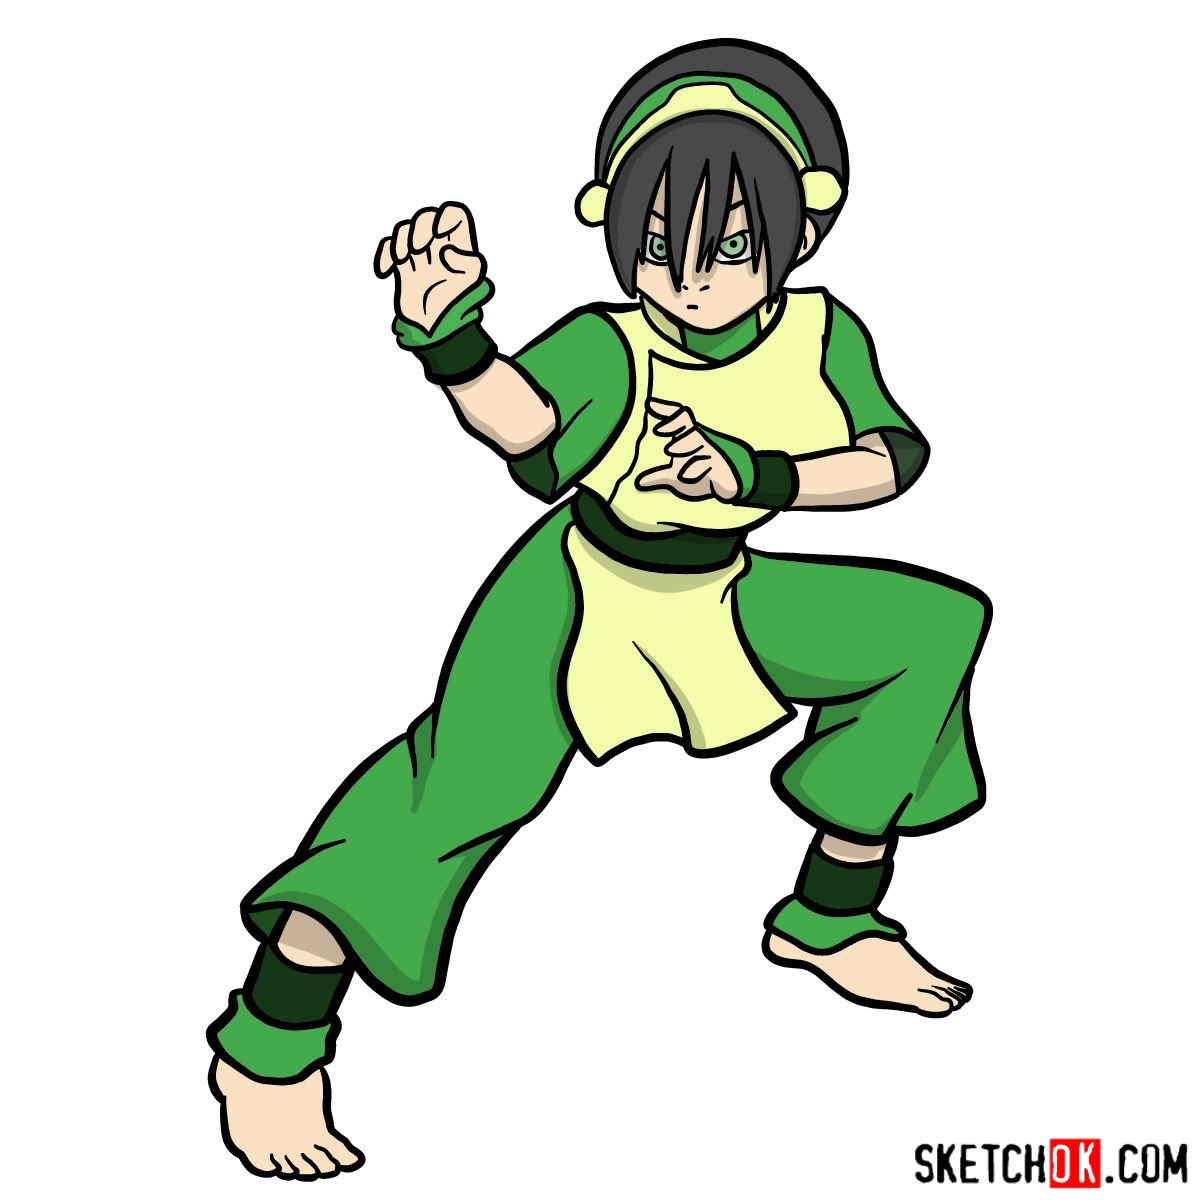 How to draw Toph Beifong